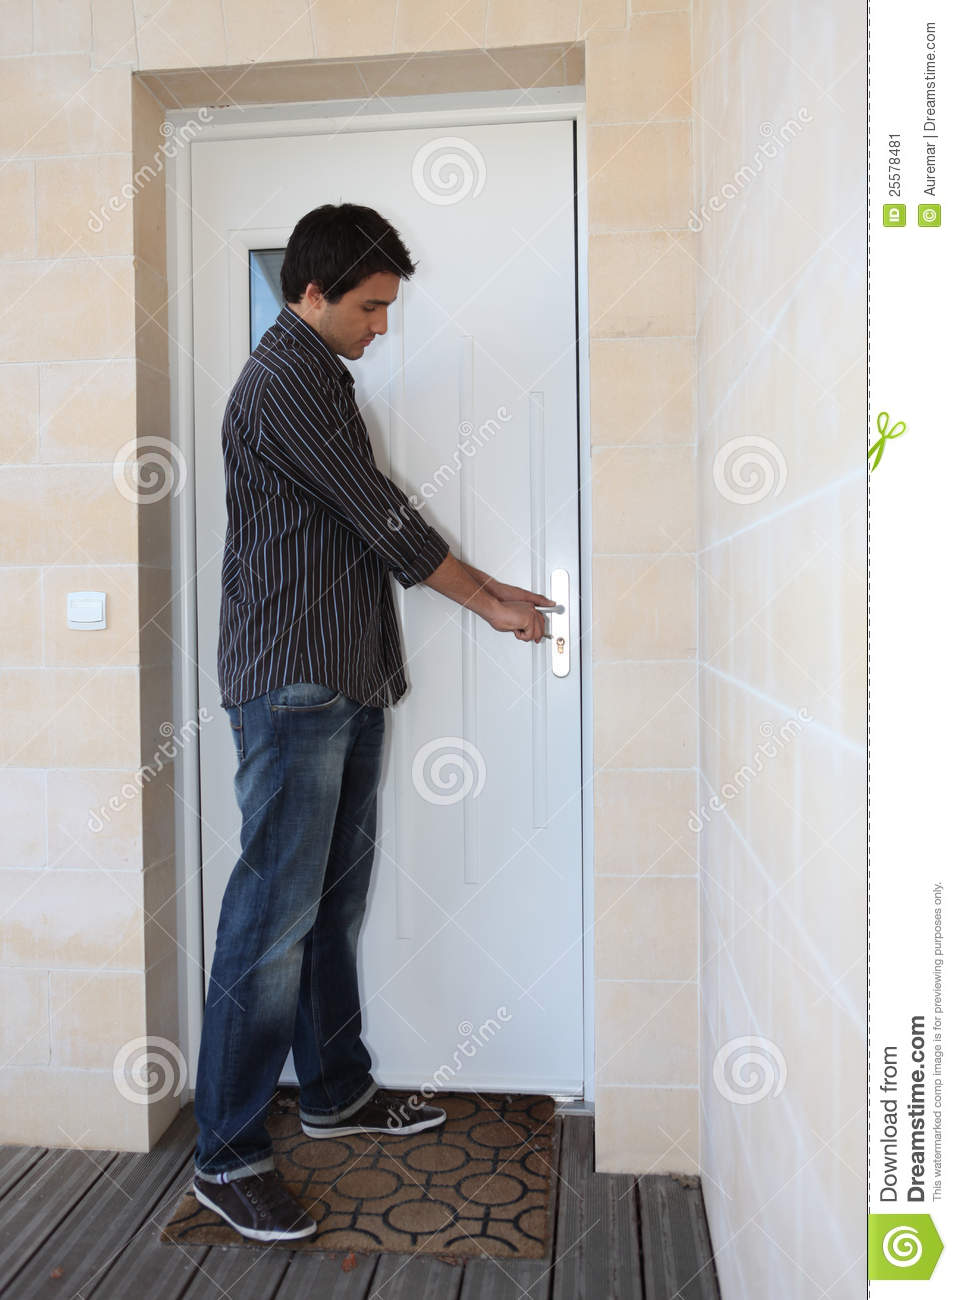 Man Opening Door Stock Image - Image: 25578481